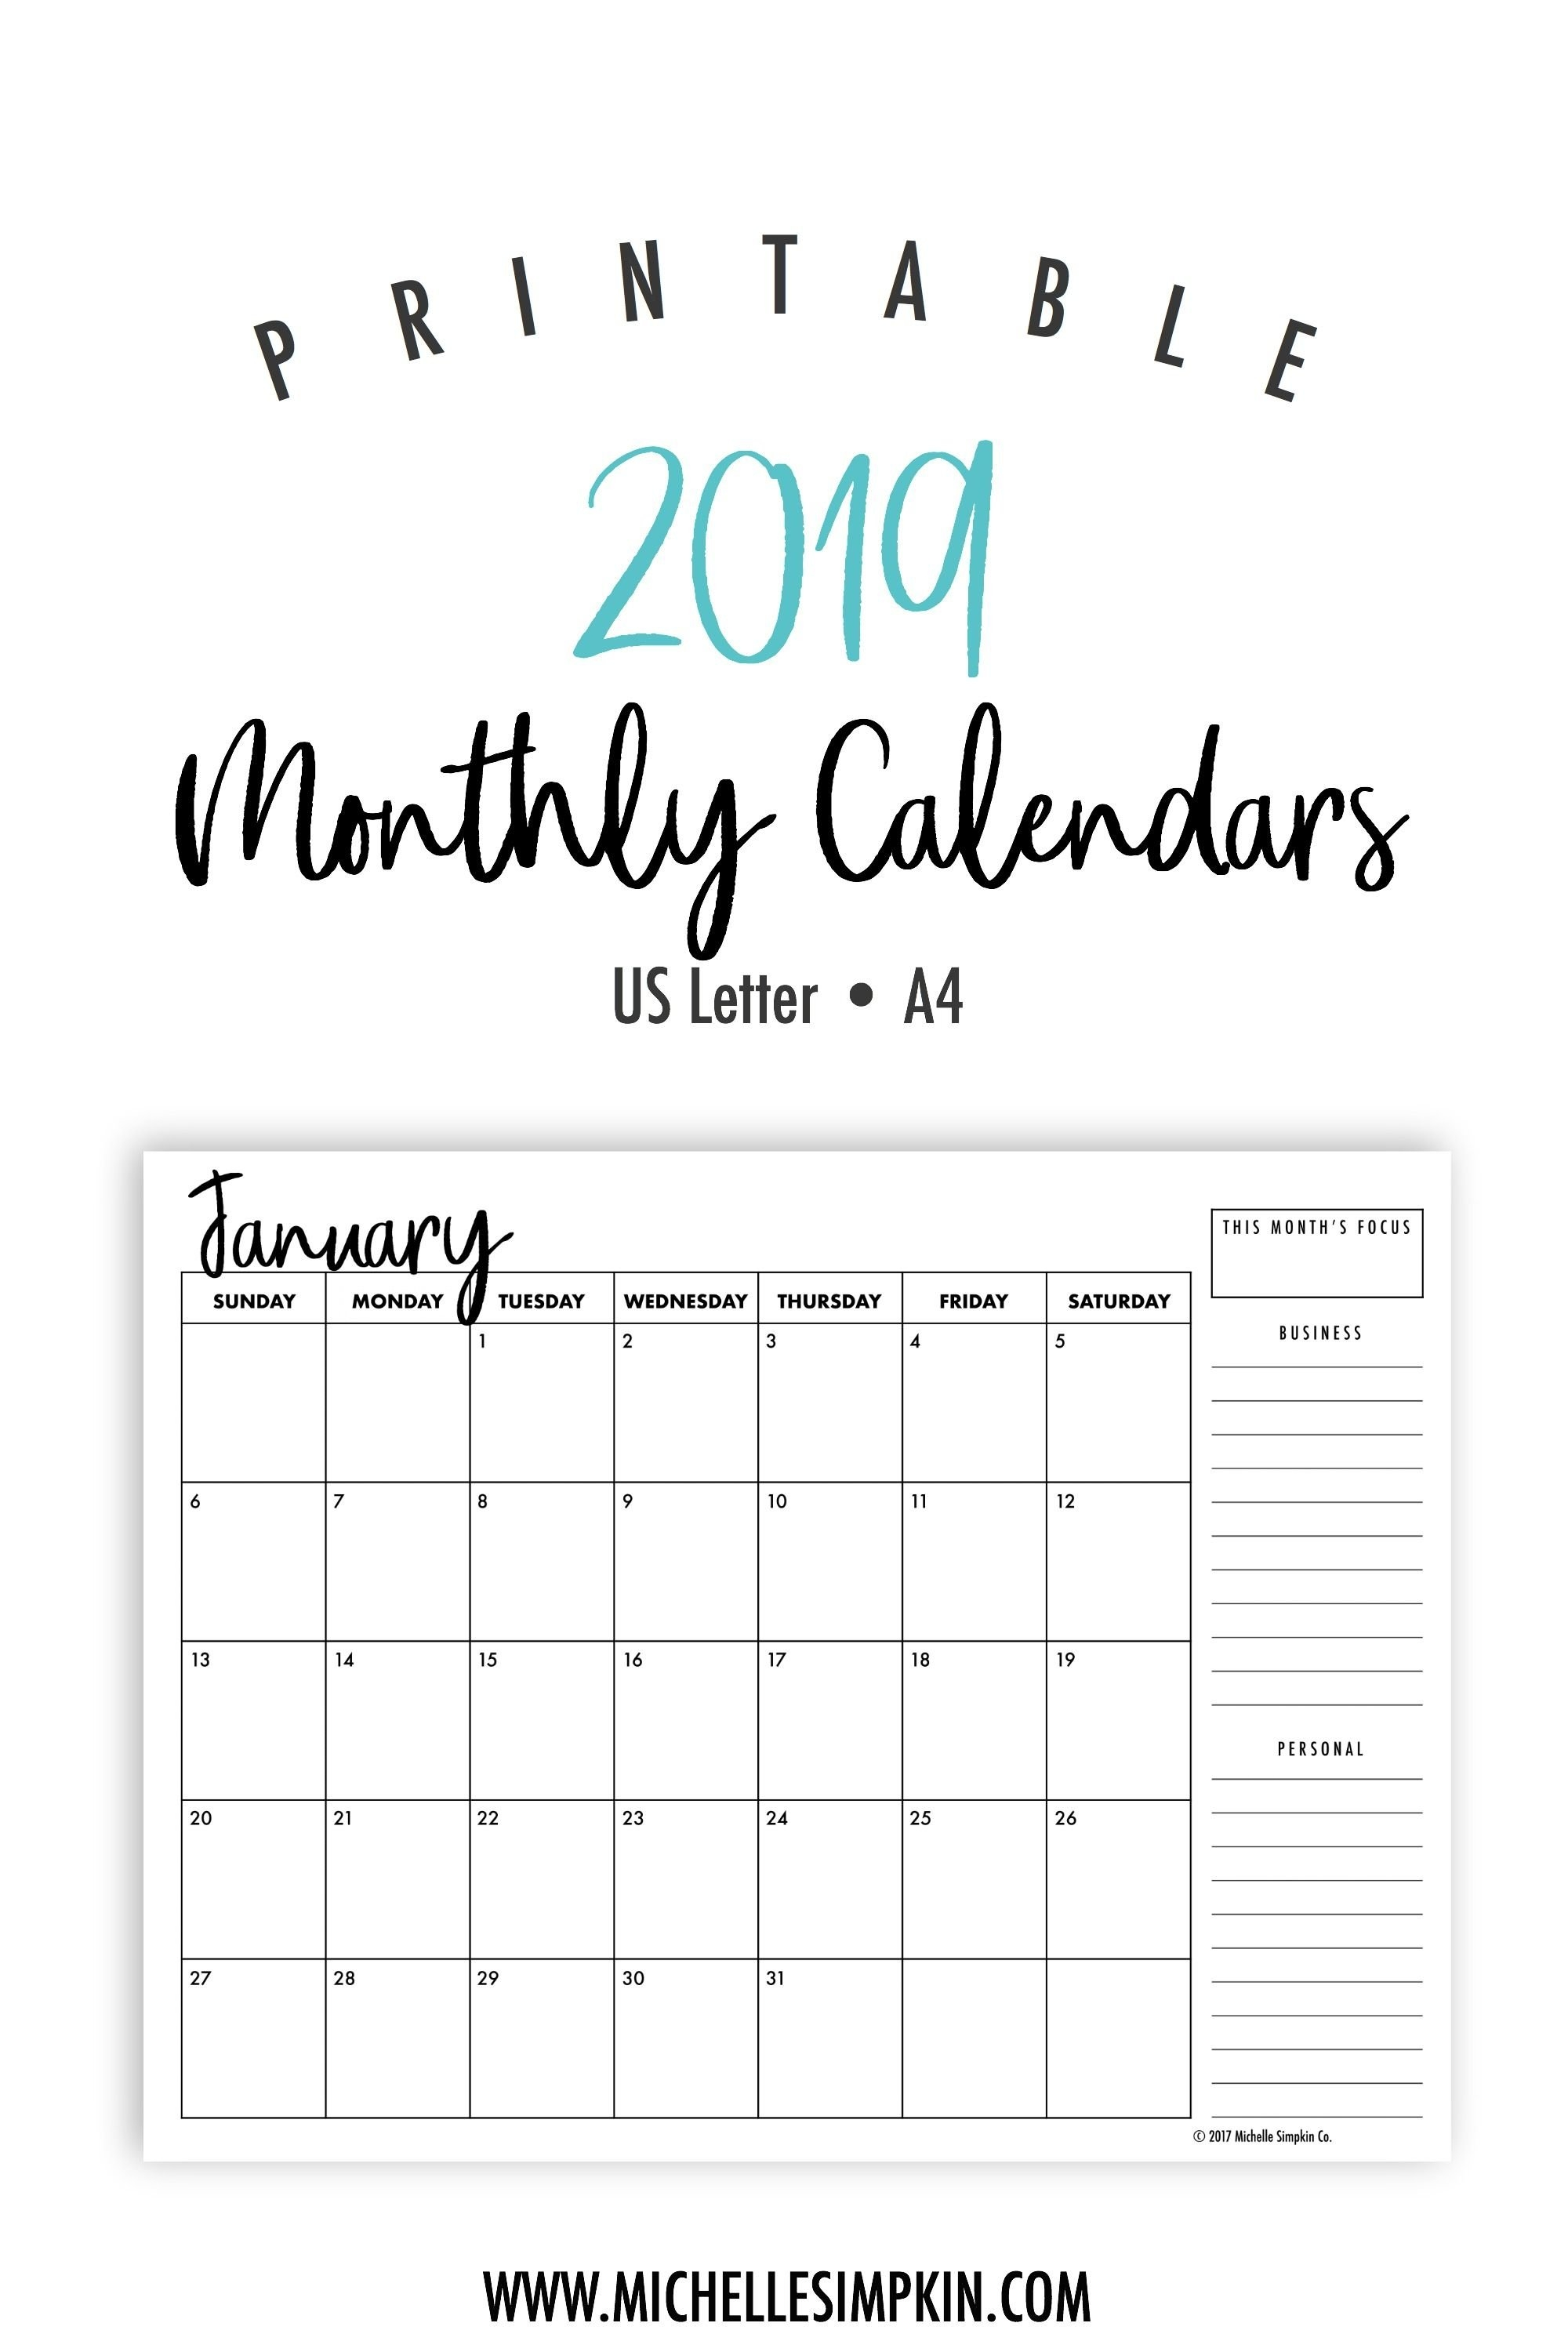 2019 Printable Calendars - Plan Out Next Year With These Ink 2019 Calendars